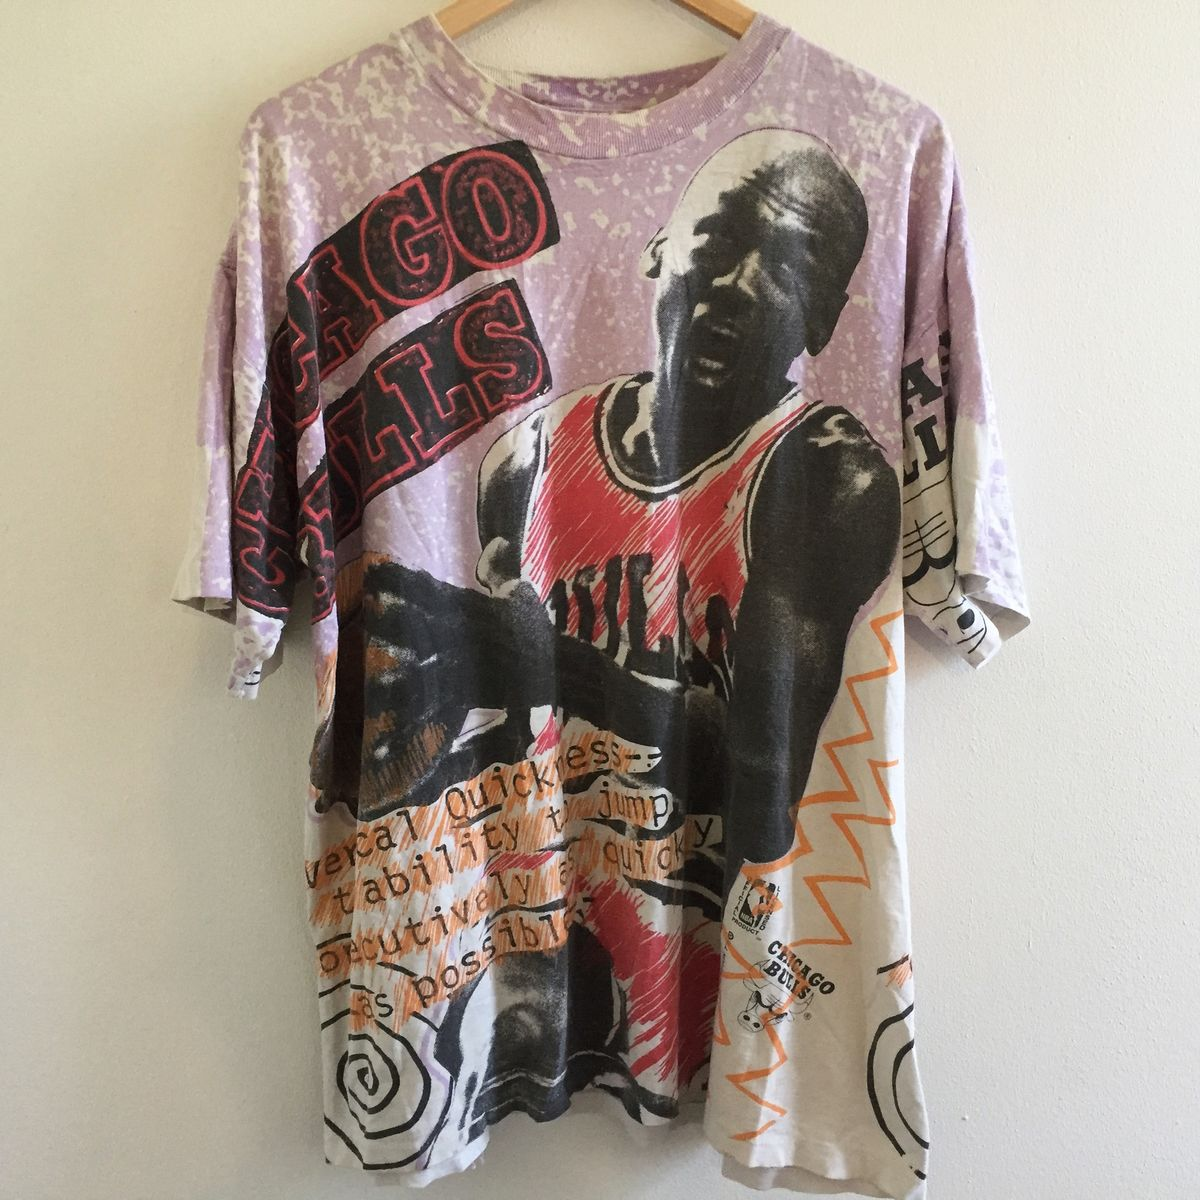 bbe580574d1eb7 ... Extremely Rare Vintage 90s Michael Jordan Chicago Bulls All-Over Print  Tee - product images ...